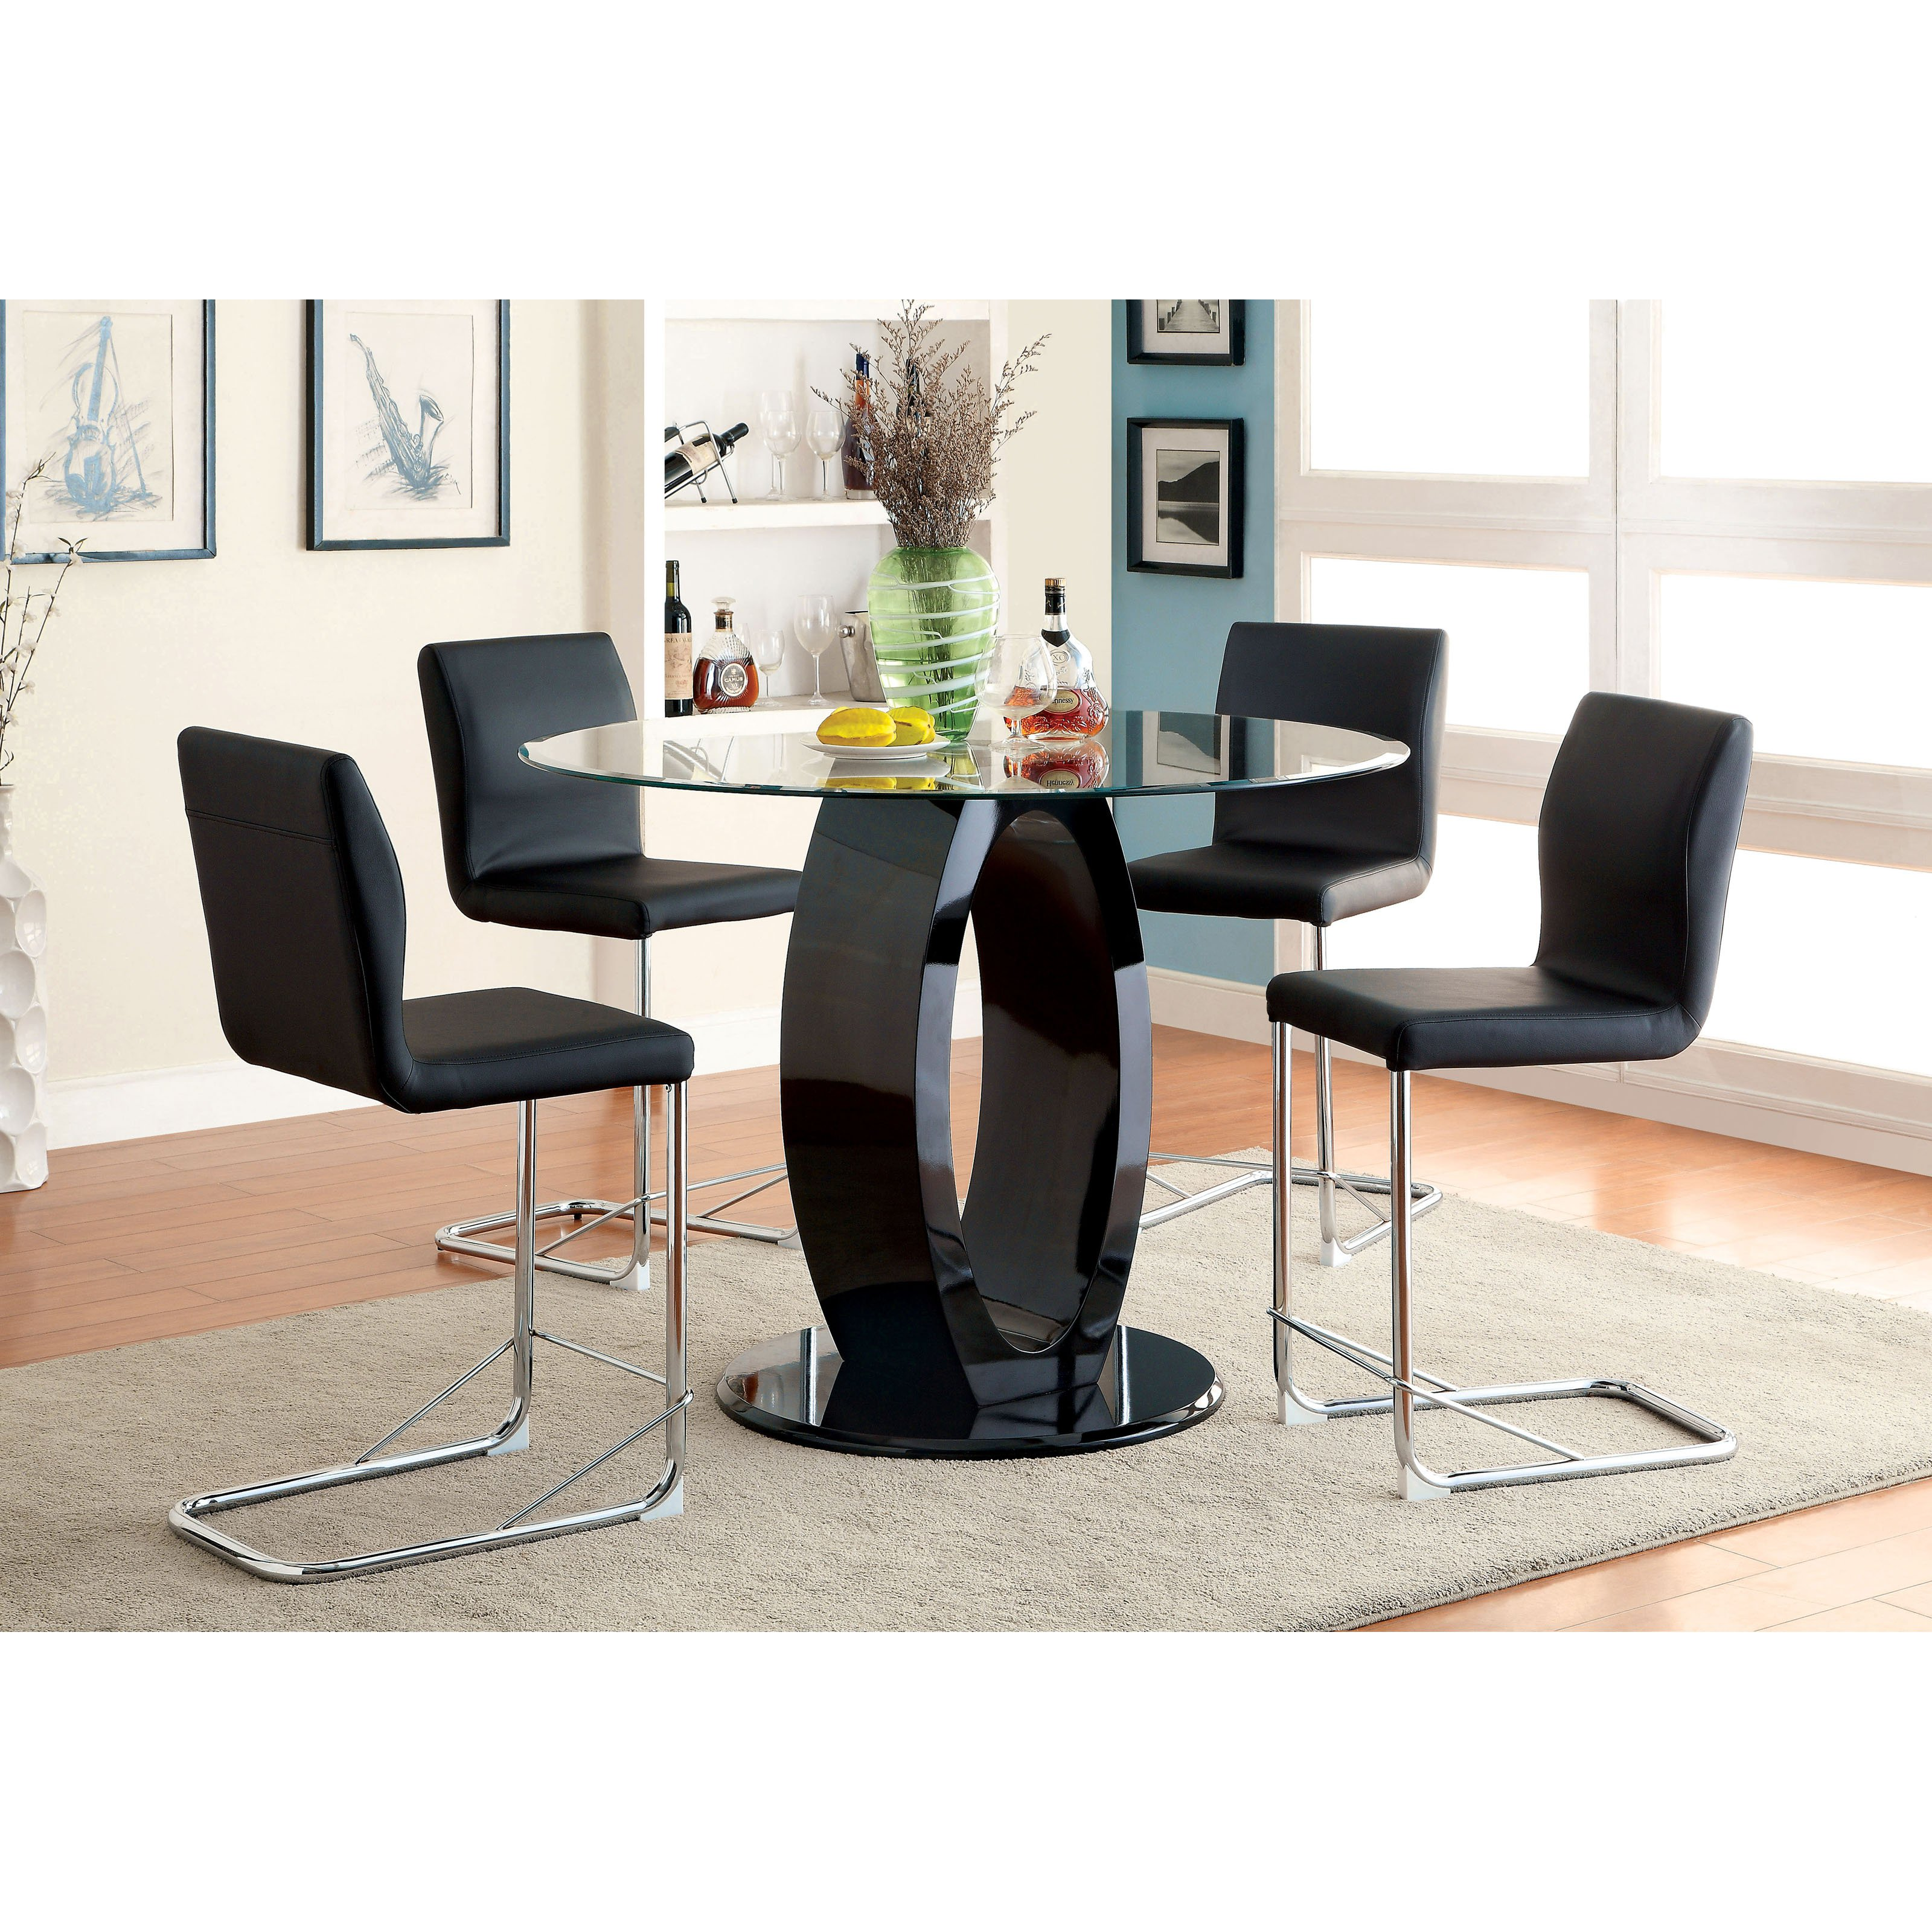 Furniture Of America Damore Contemporary 5 Piece Counter Height High Gloss  Round Dining Table Set